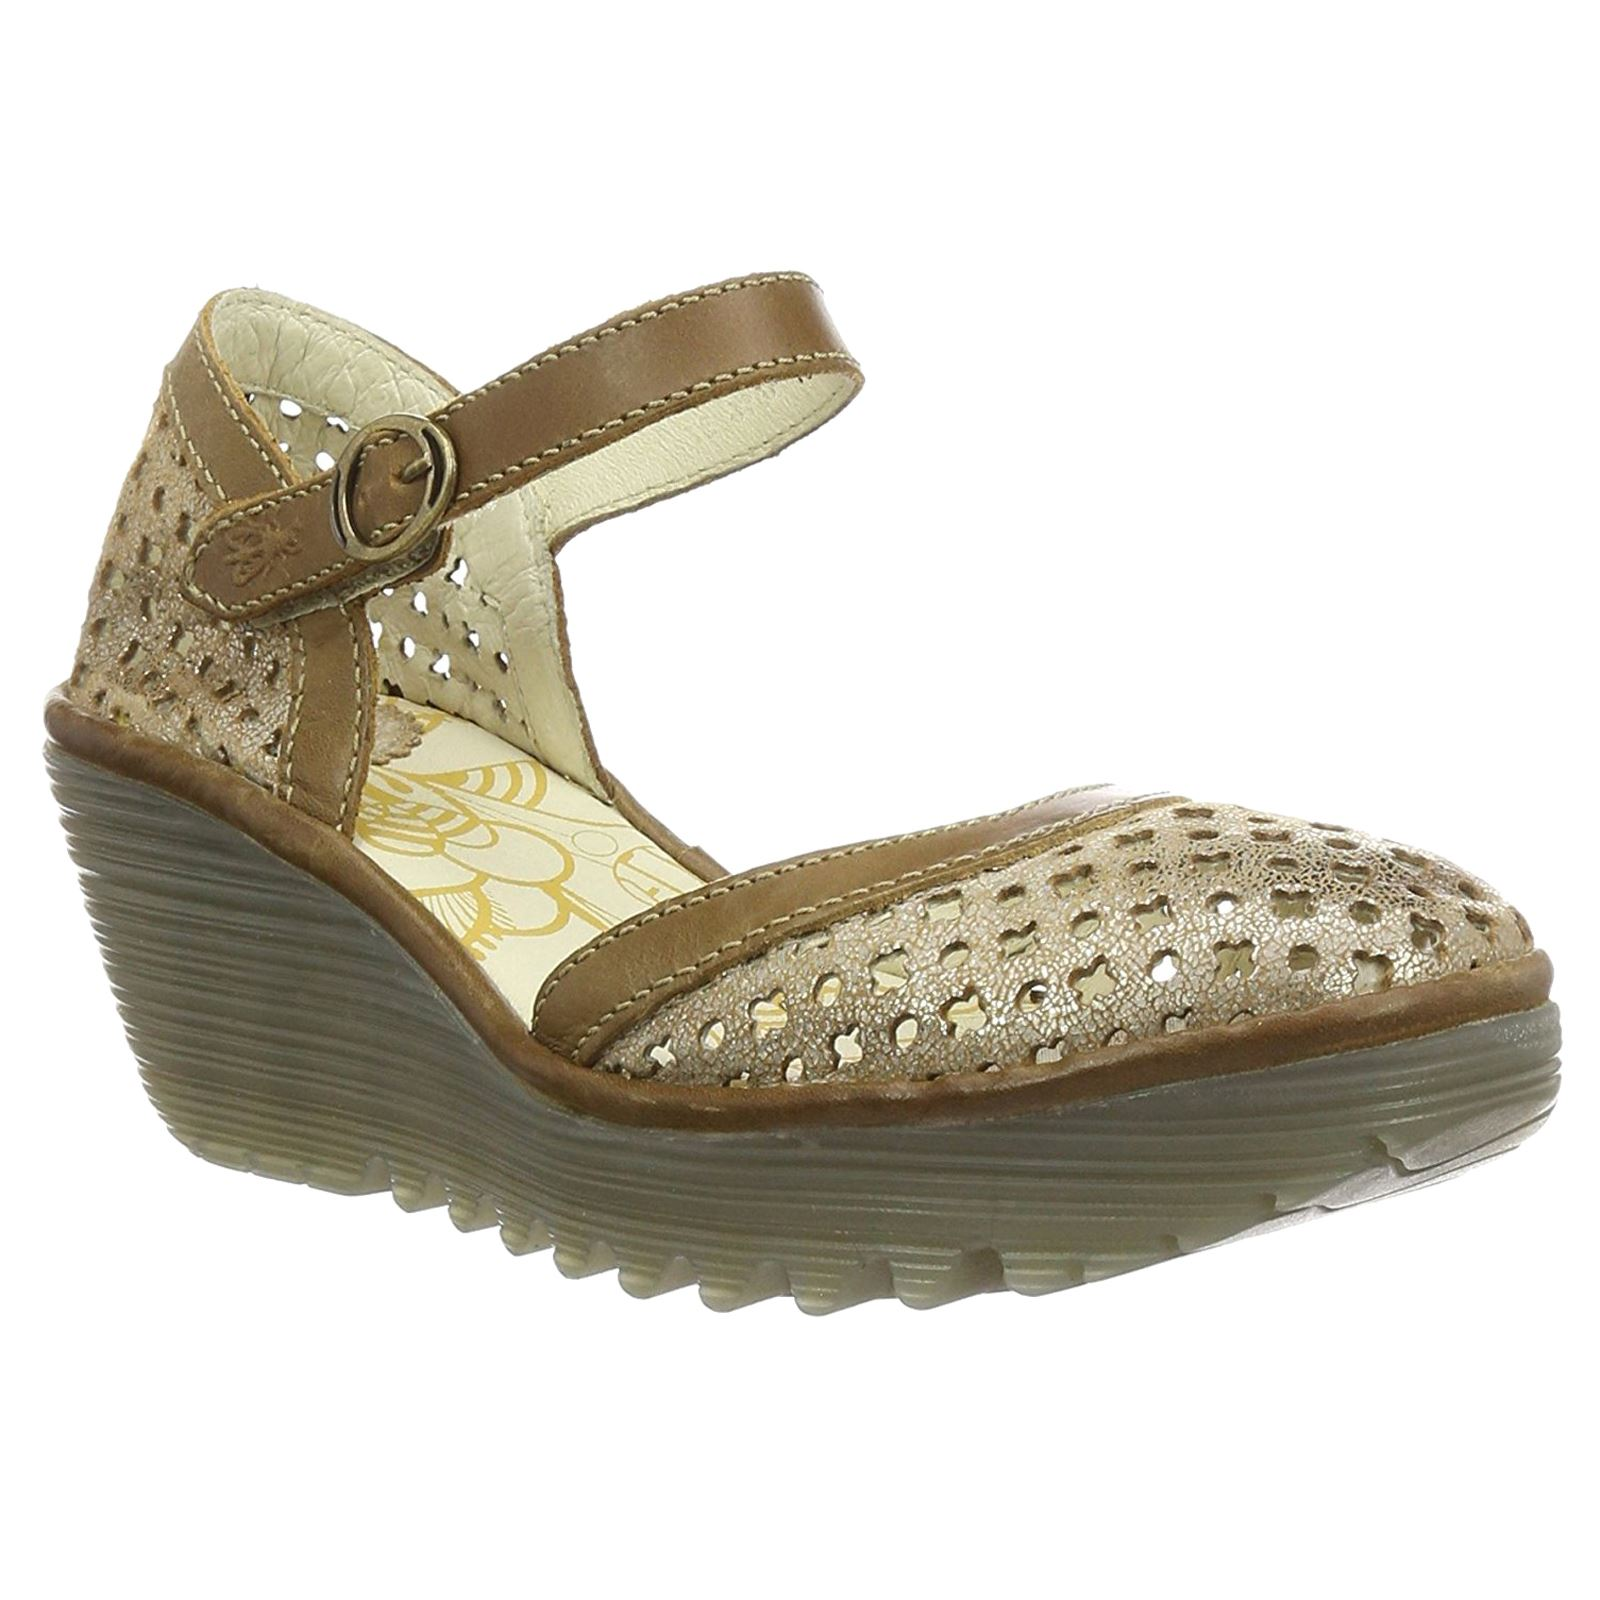 Último gran descuento Fly London Yadu 732 Luna Camel Womens Closed toe Wedge Sandals New